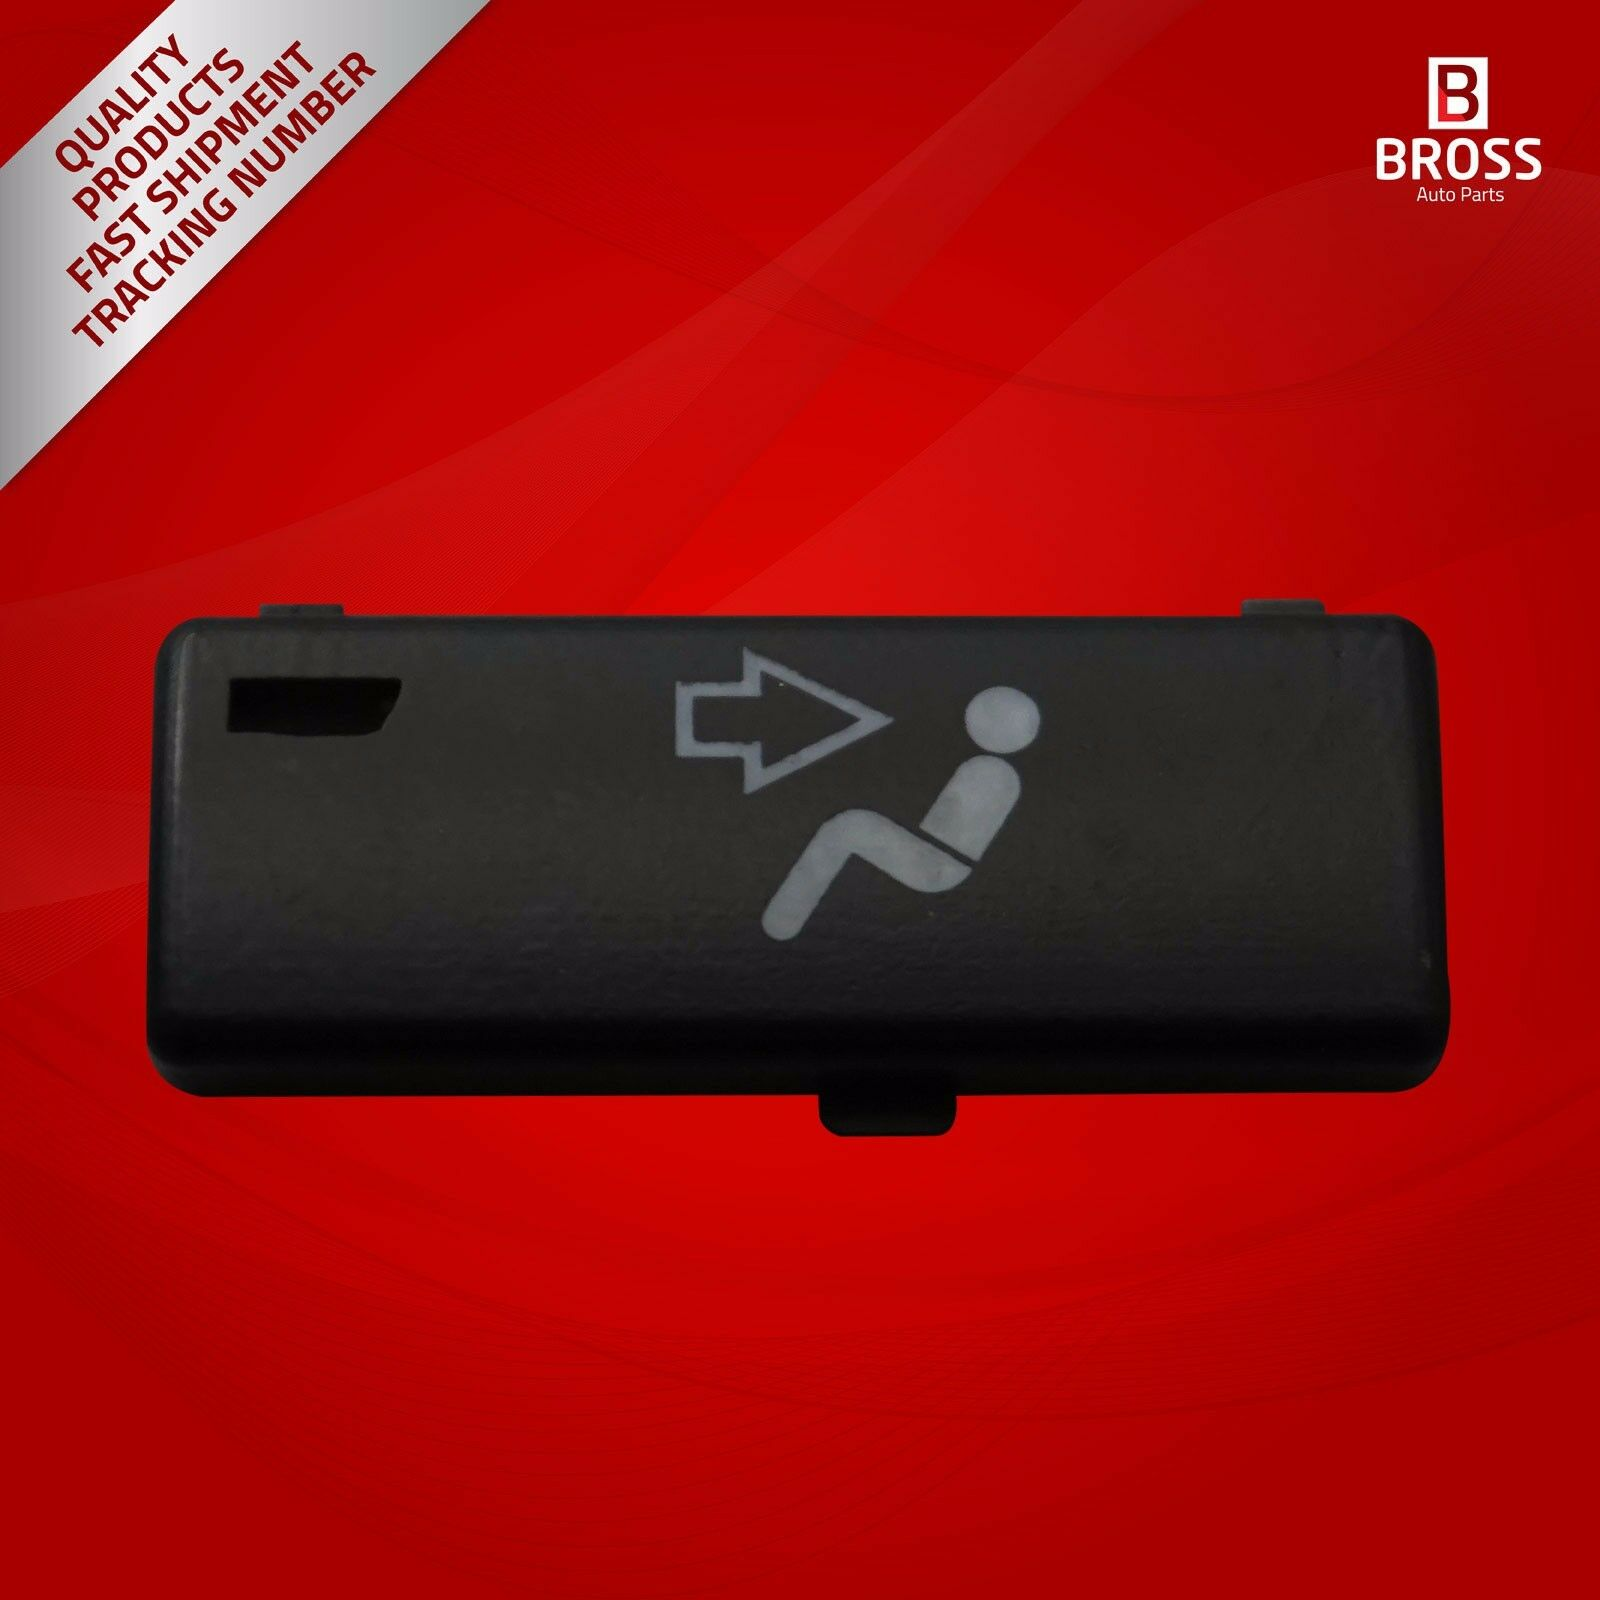 BDP88-2 1 Stuk Heater Climate Control Airconditioning Switch Knop Cover #2 Voor 5 Serie X5 E53 2000- 2007 E39 1995-2003